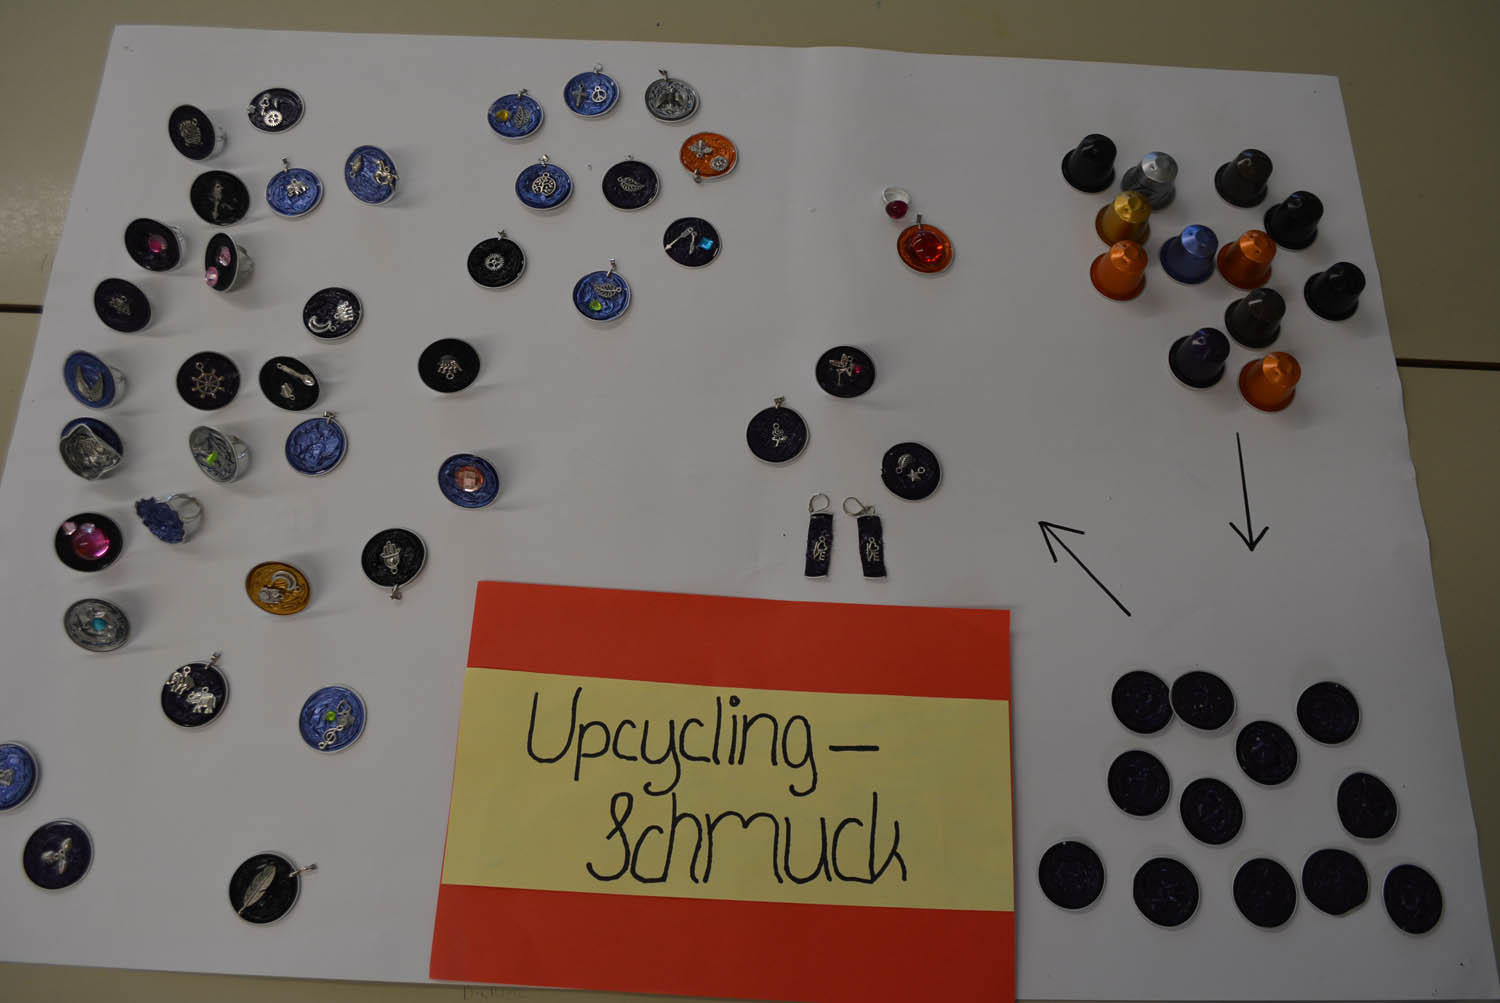 Ludwig-Auer-Schule M7 Upcycling 4